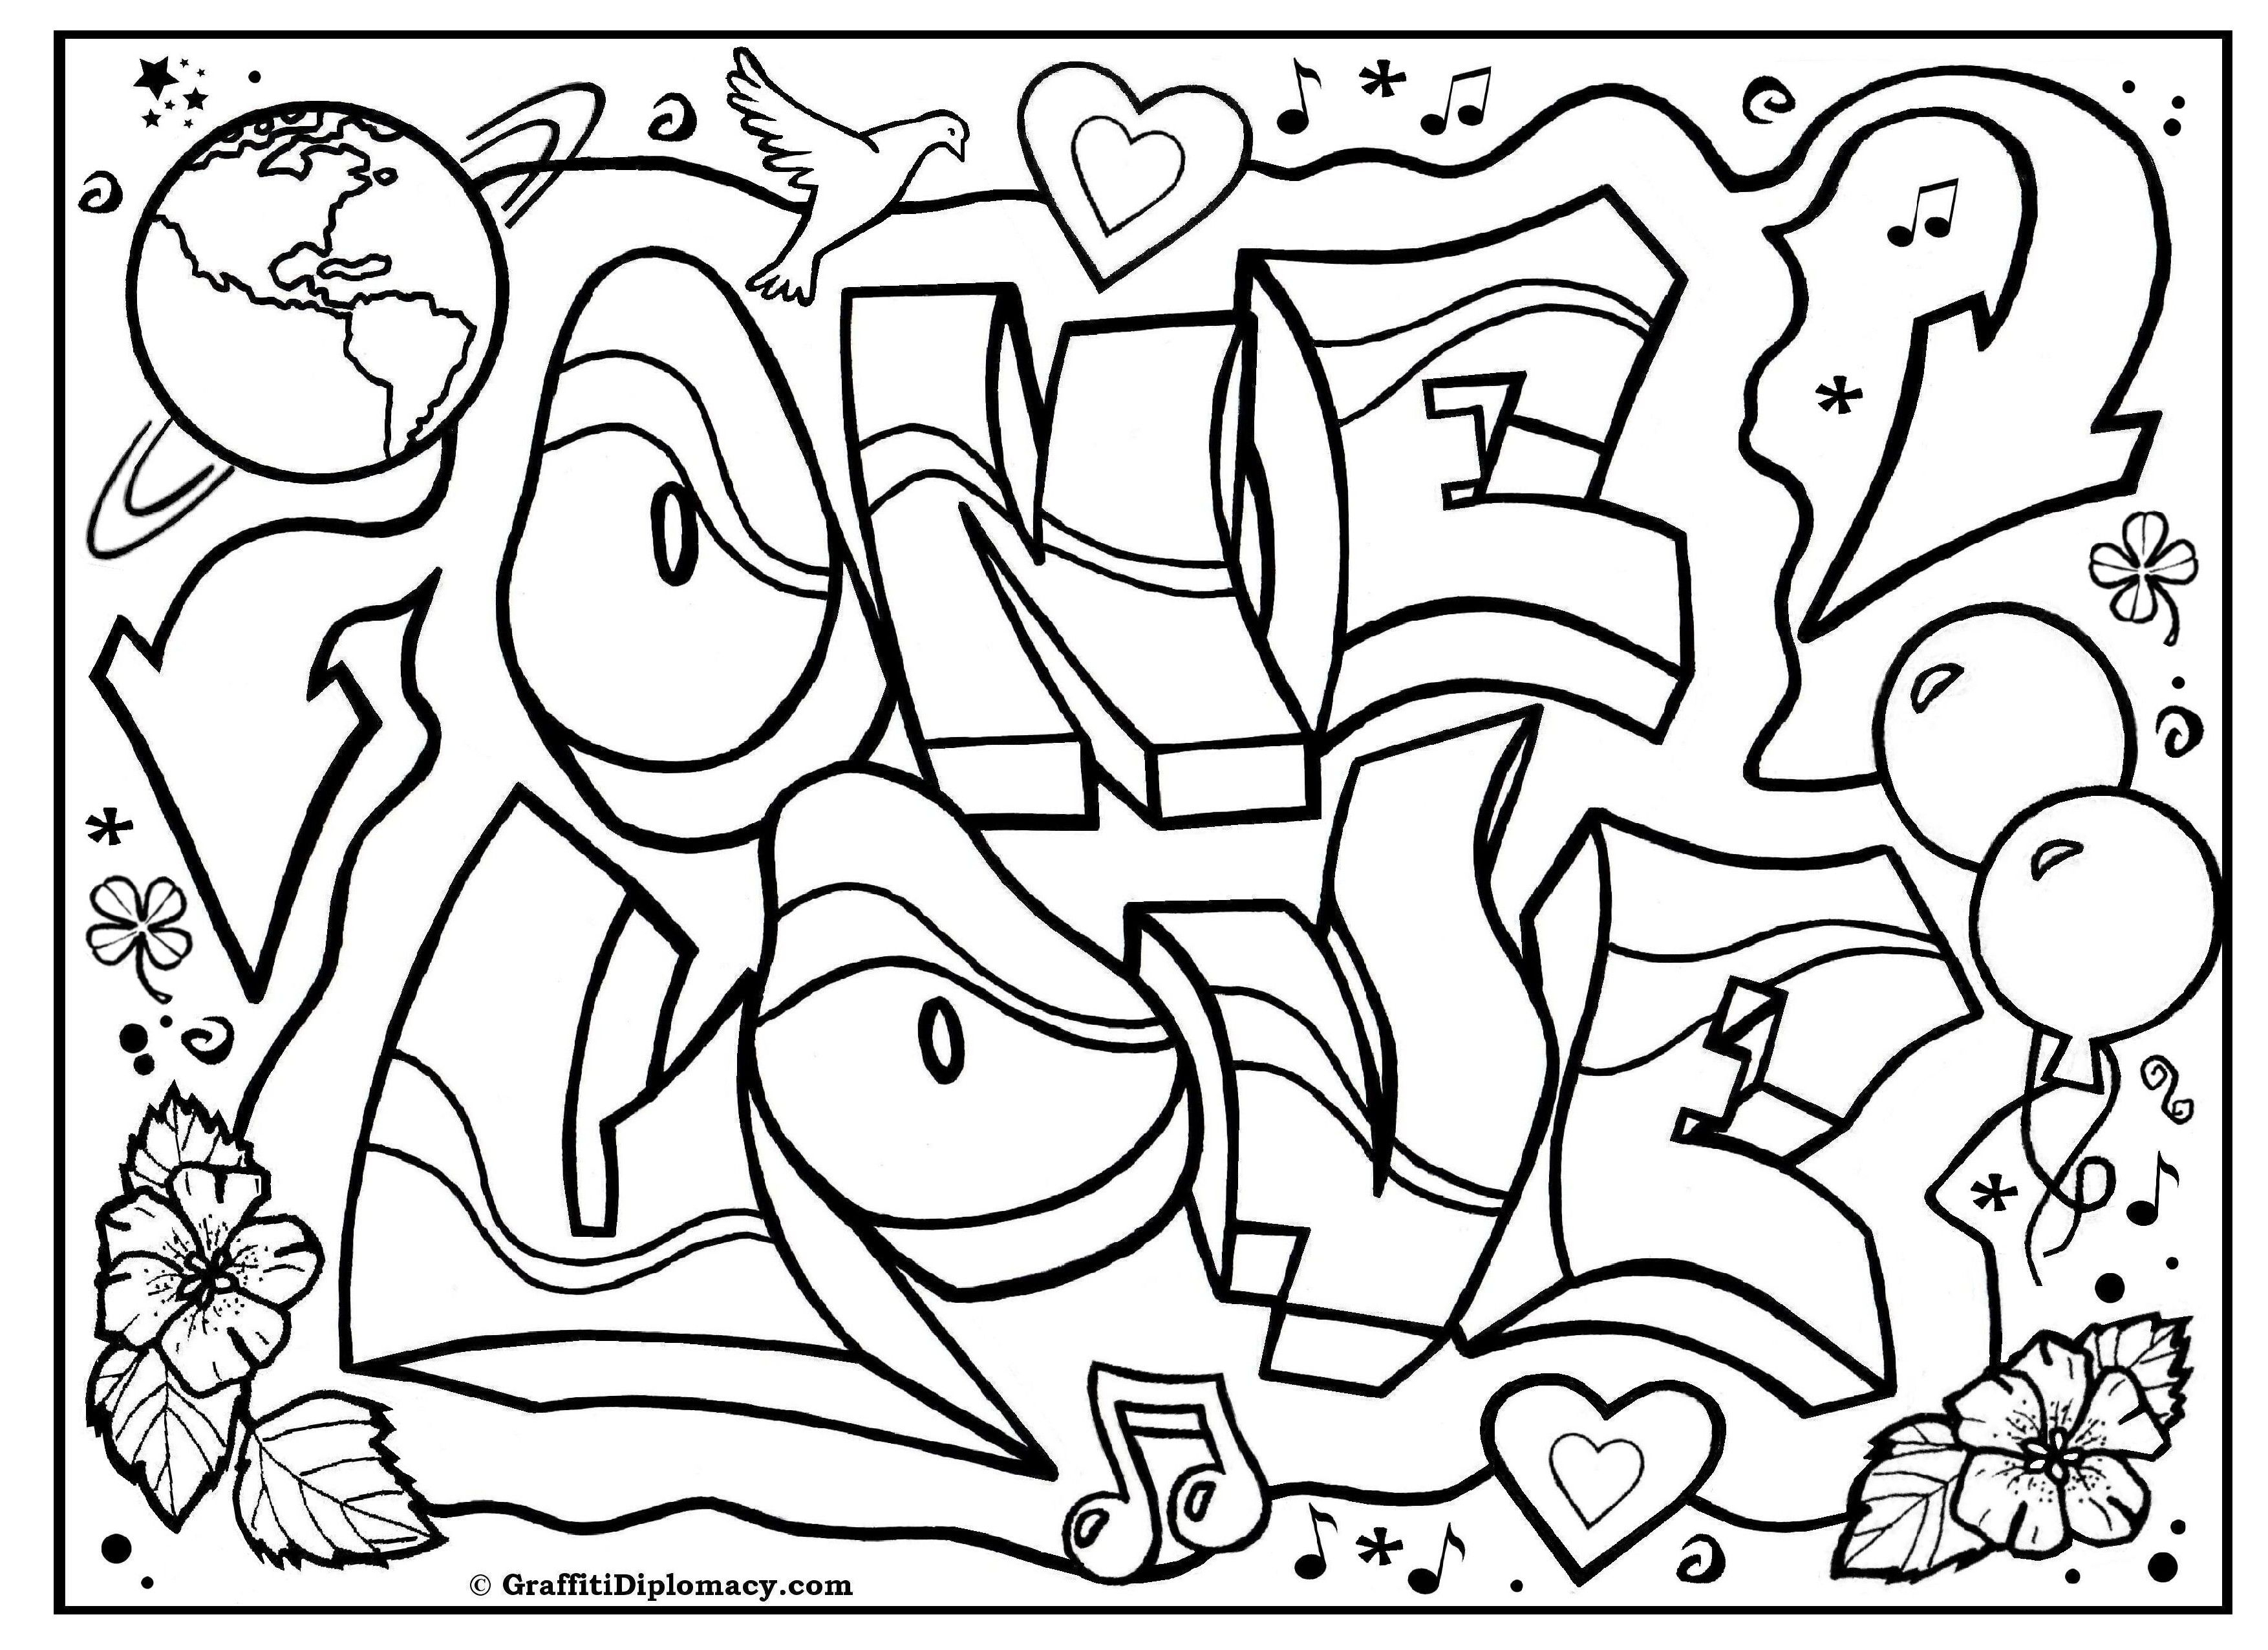 3508x2552 Great Site For Adult Coloring Pages Kids Crafts To Print